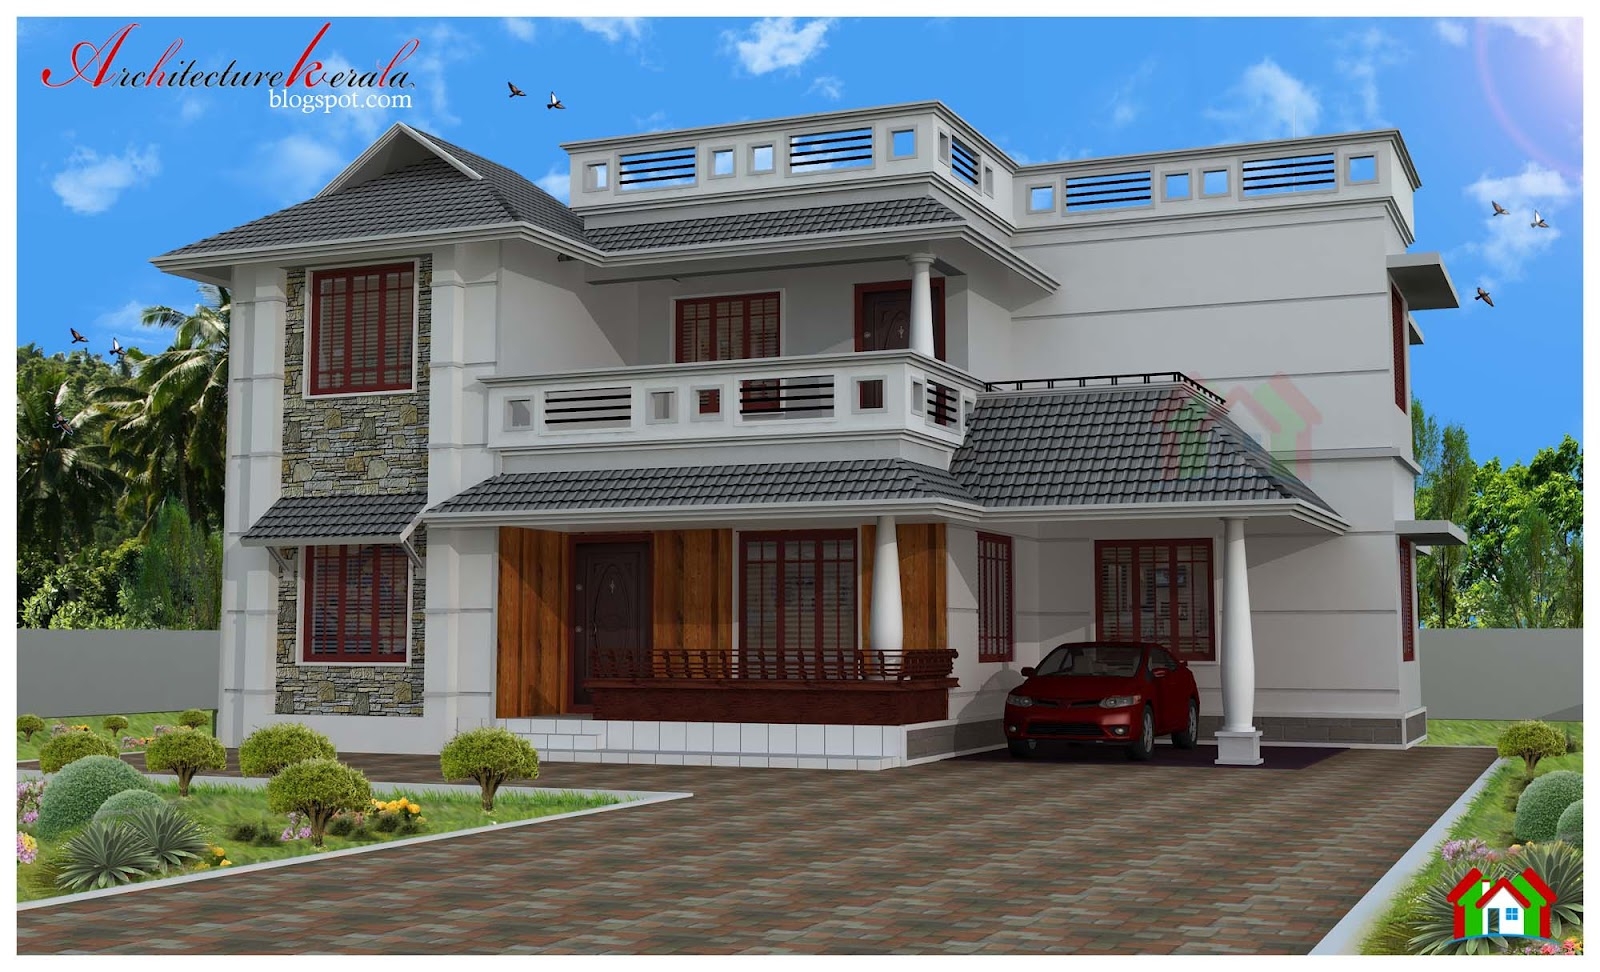 Architecture kerala four bed room house plan for Plan houses